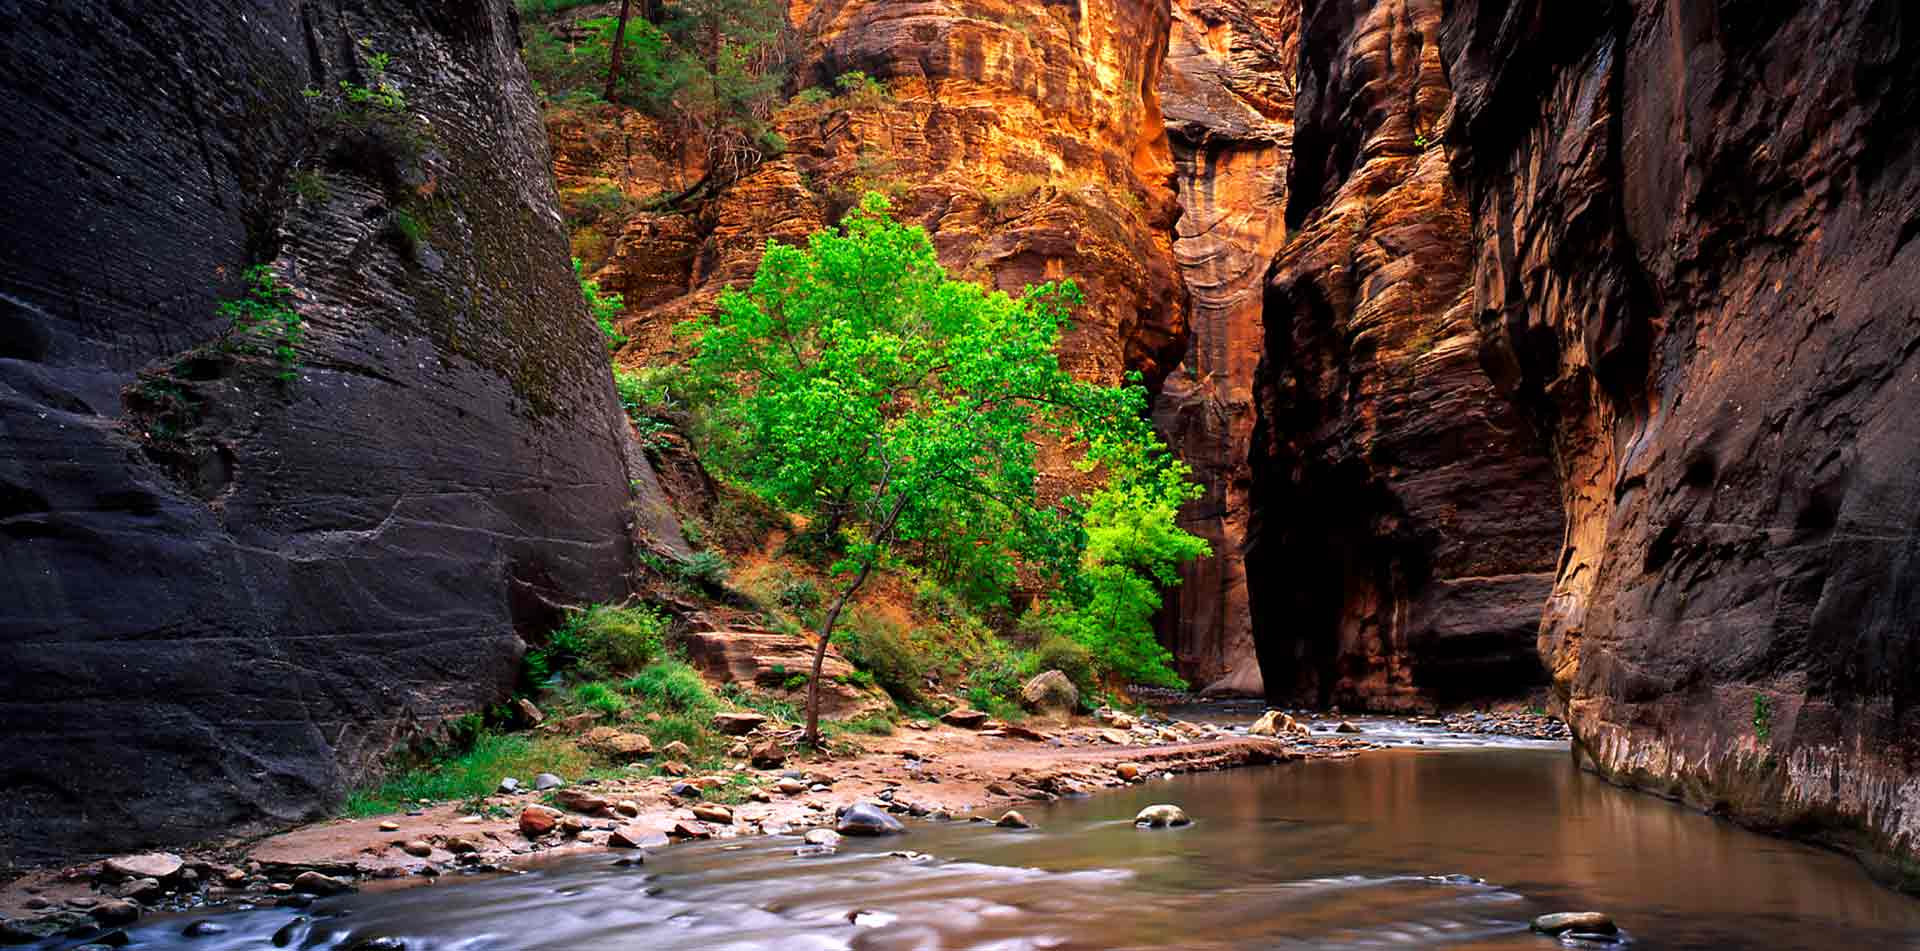 North America United States USA Utah Zion National Park Zion Narrows canyon red sandstone rock - luxury vacation destinations